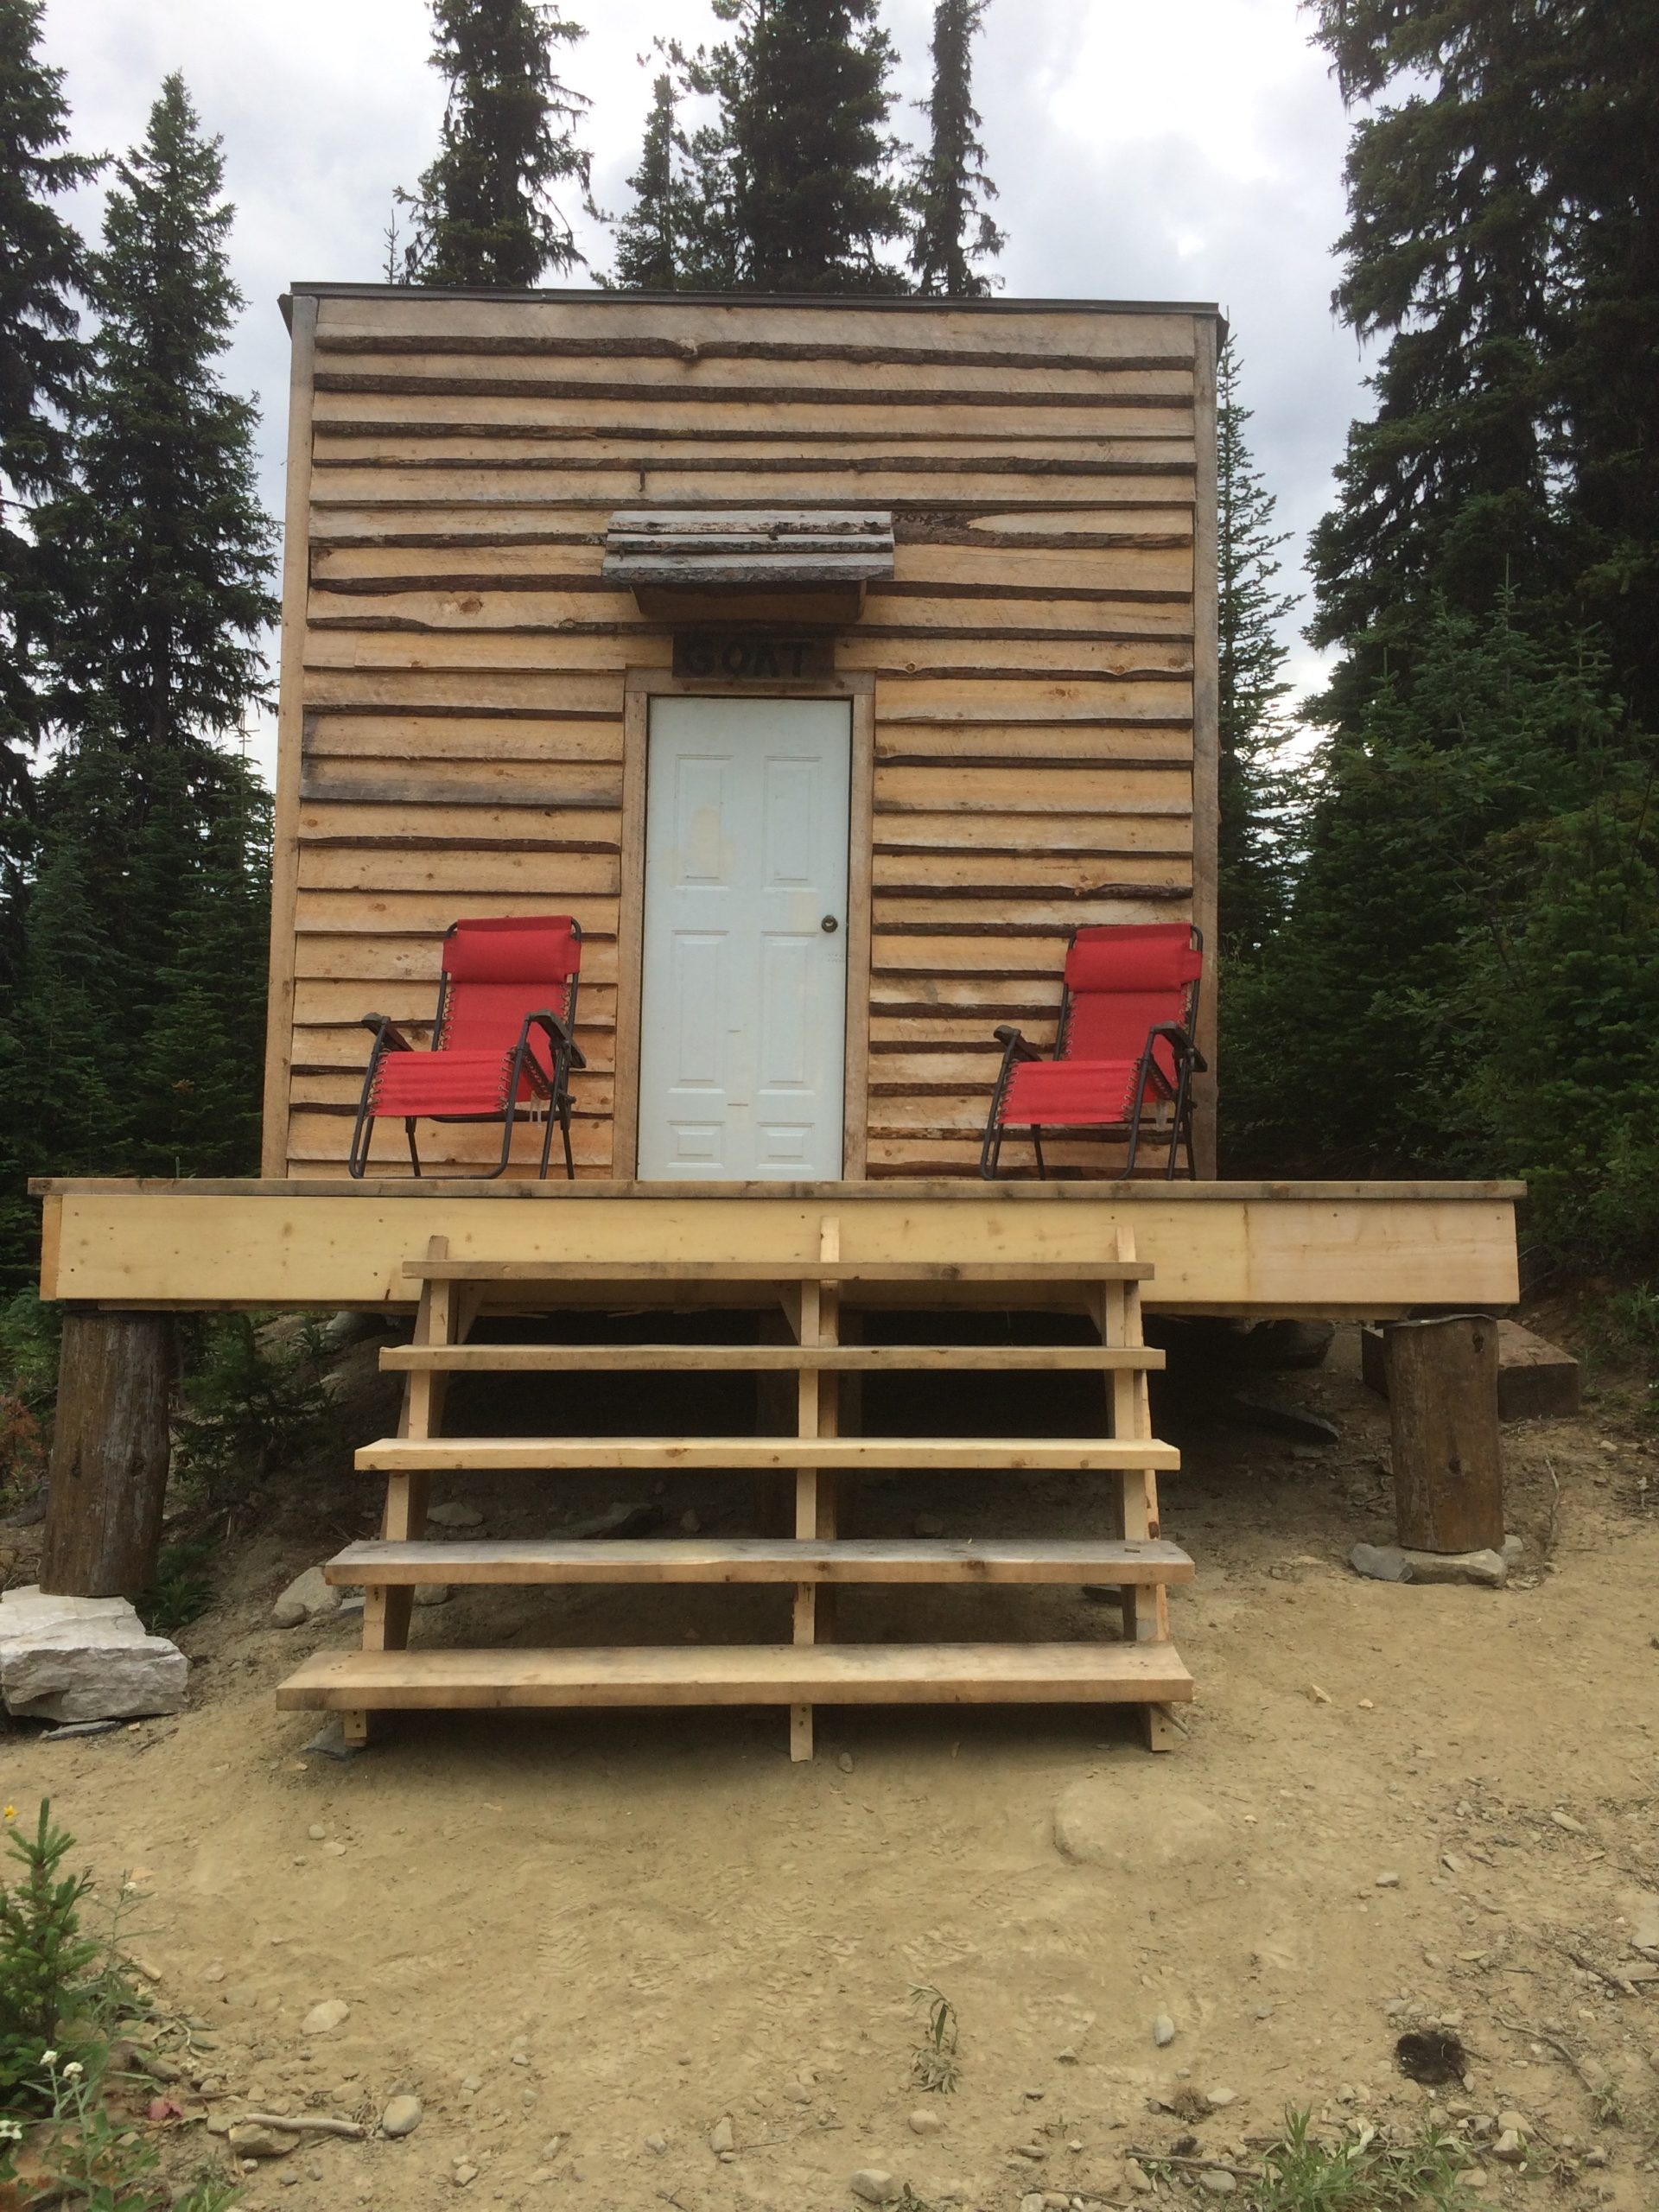 The Goat Cabin